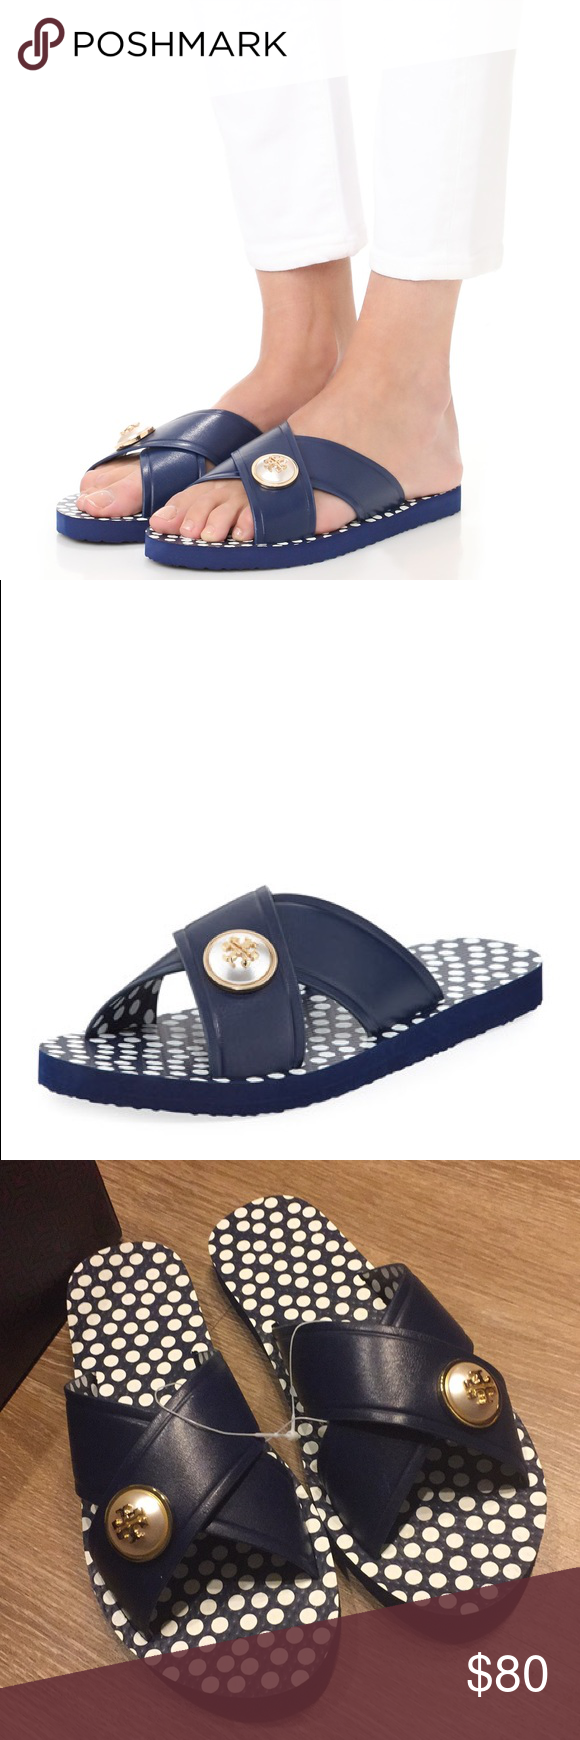 e814f7d4d969 Tory Burch navy melody crisscross sandals